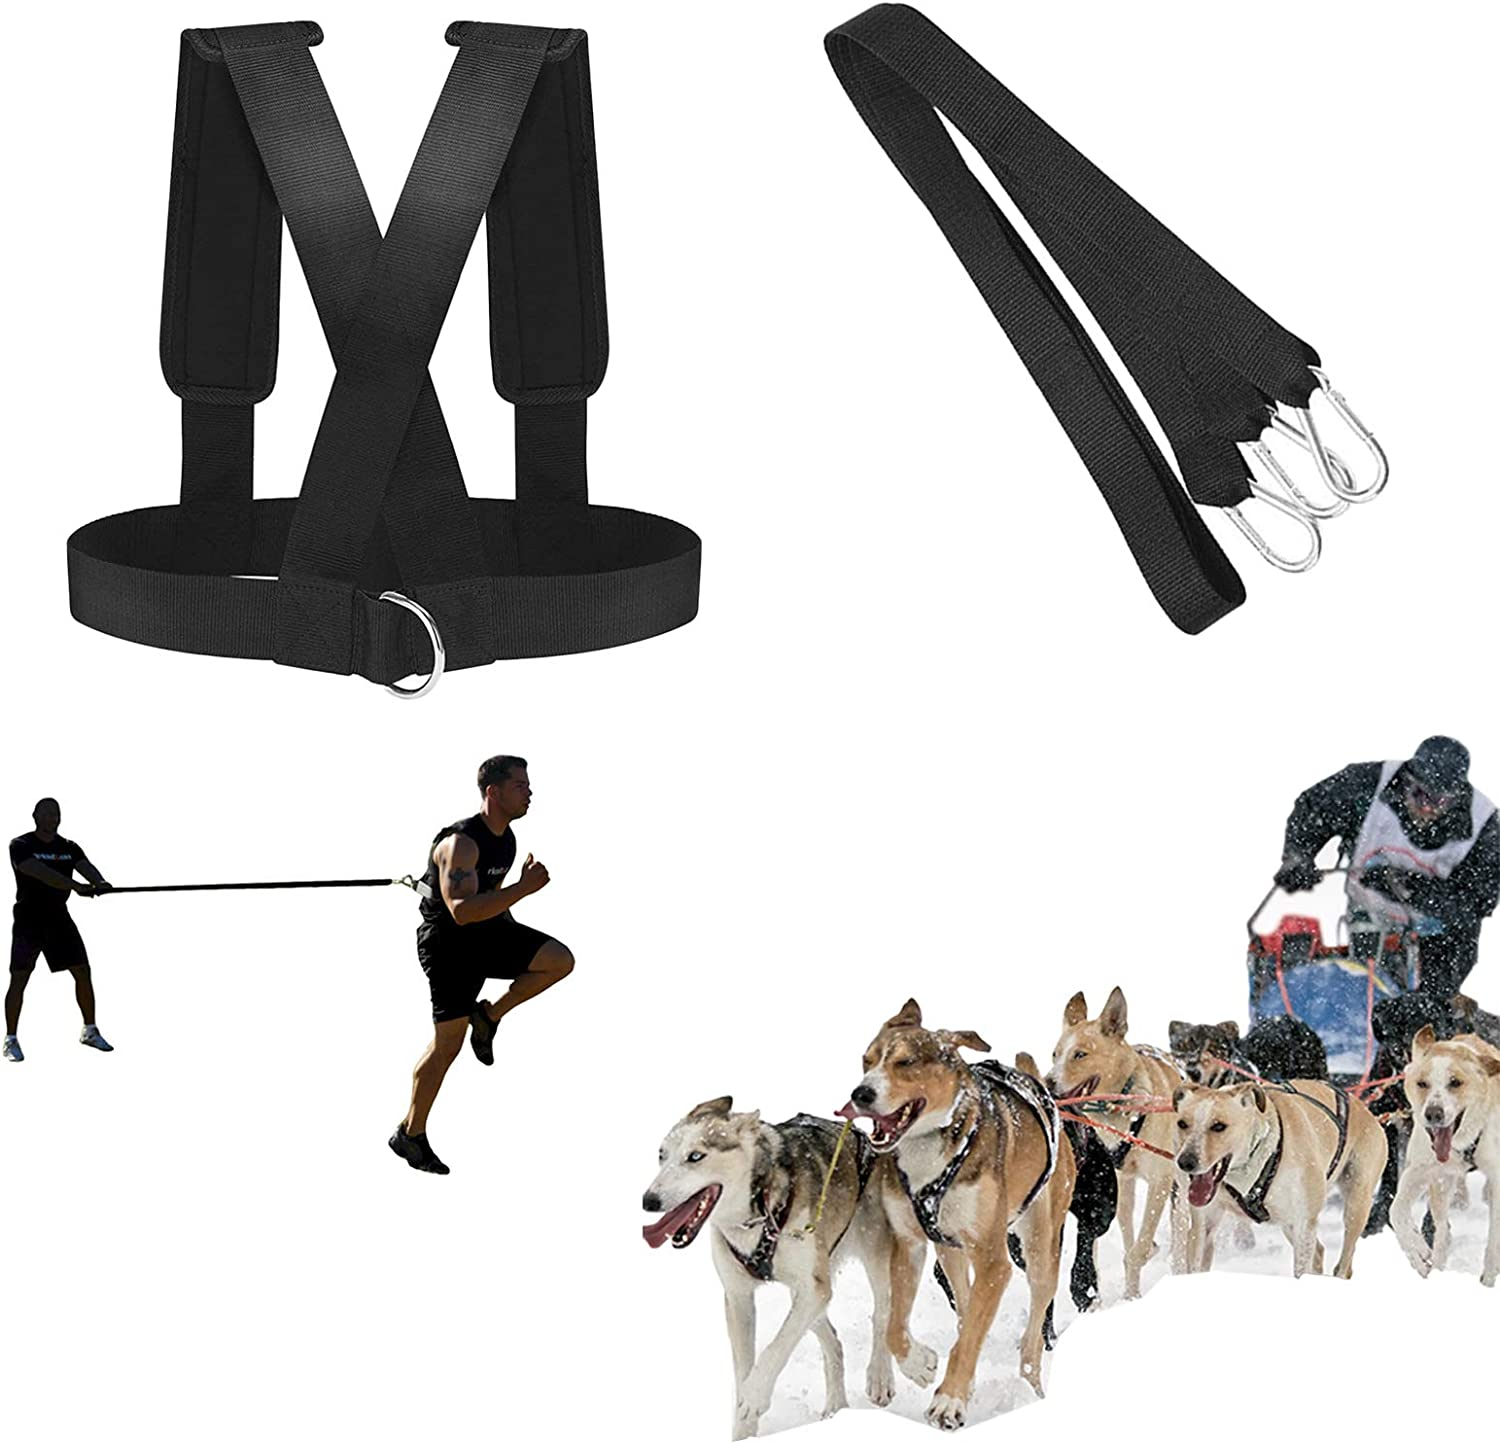 ROLLMOSS Prowler Sled, Adjustable Push Sled and Workout Sled, Weight Sleds for Training and Speed Sled, Sled Harness Fitness Resistance Training Workout Padded Shoulder Strap (Black)